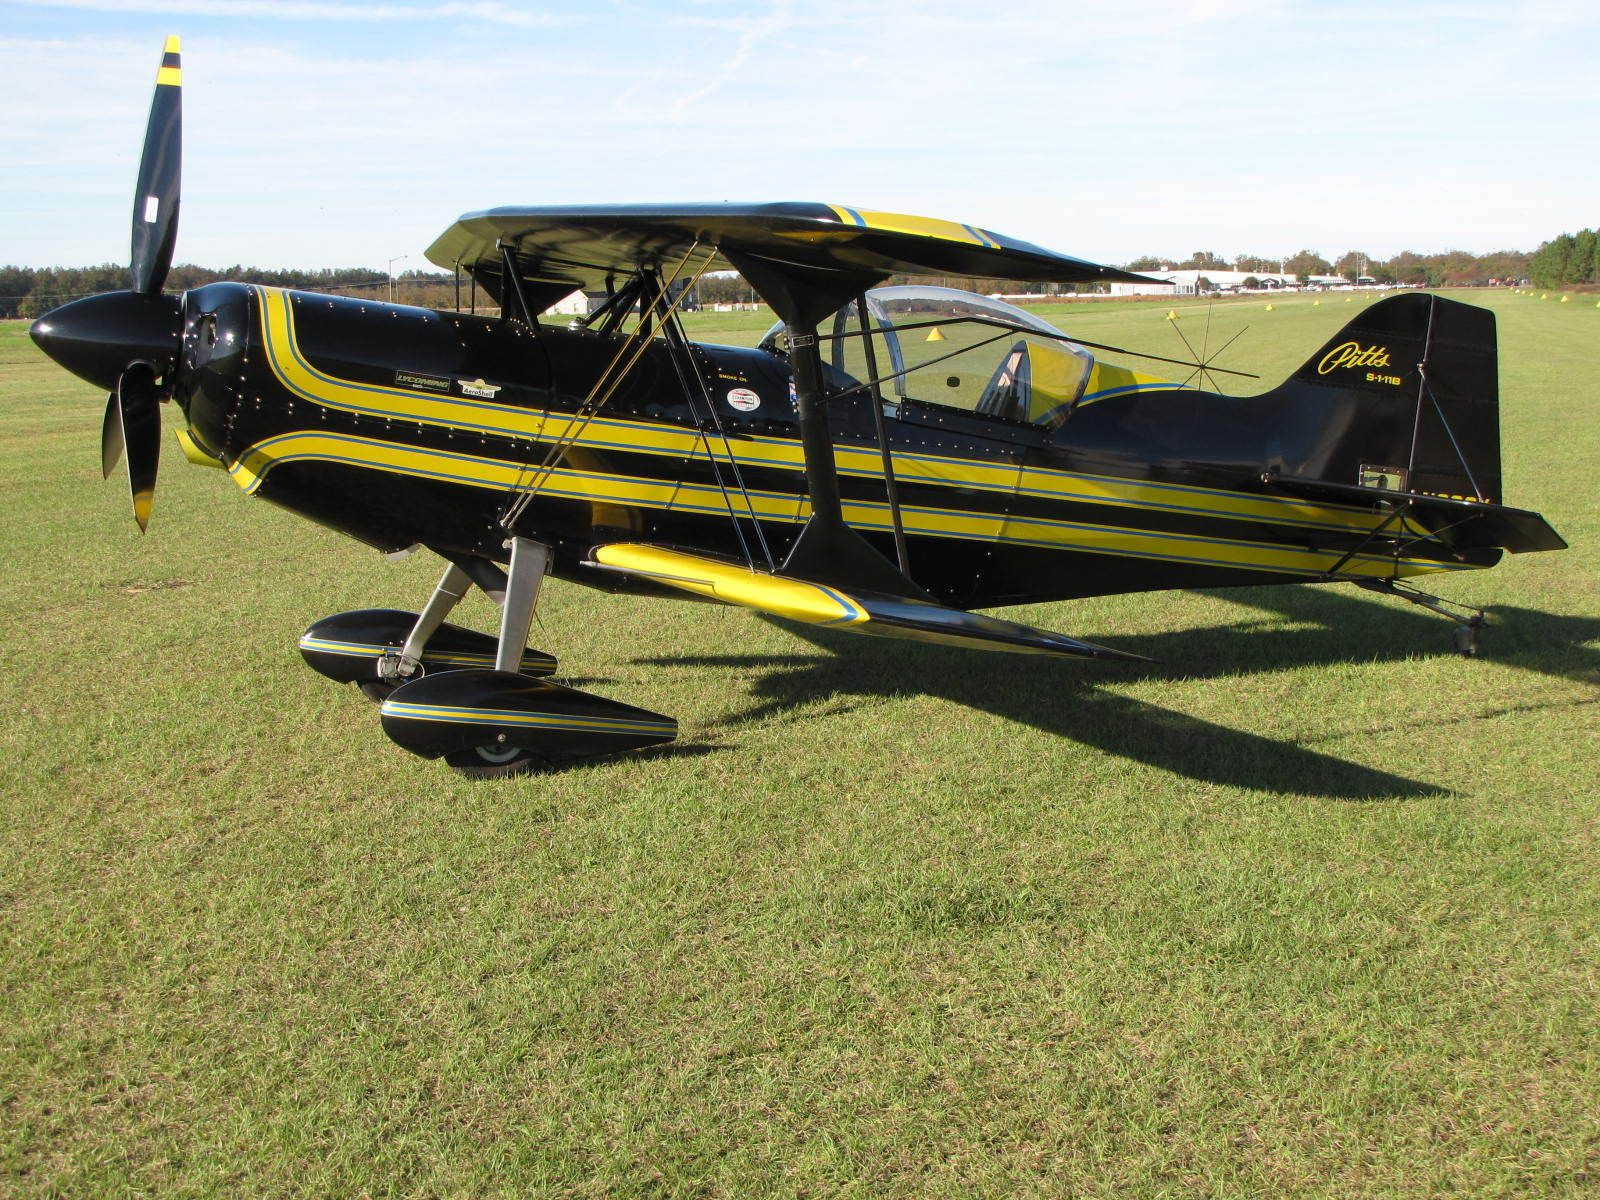 2002 Pitts S111B General aviation